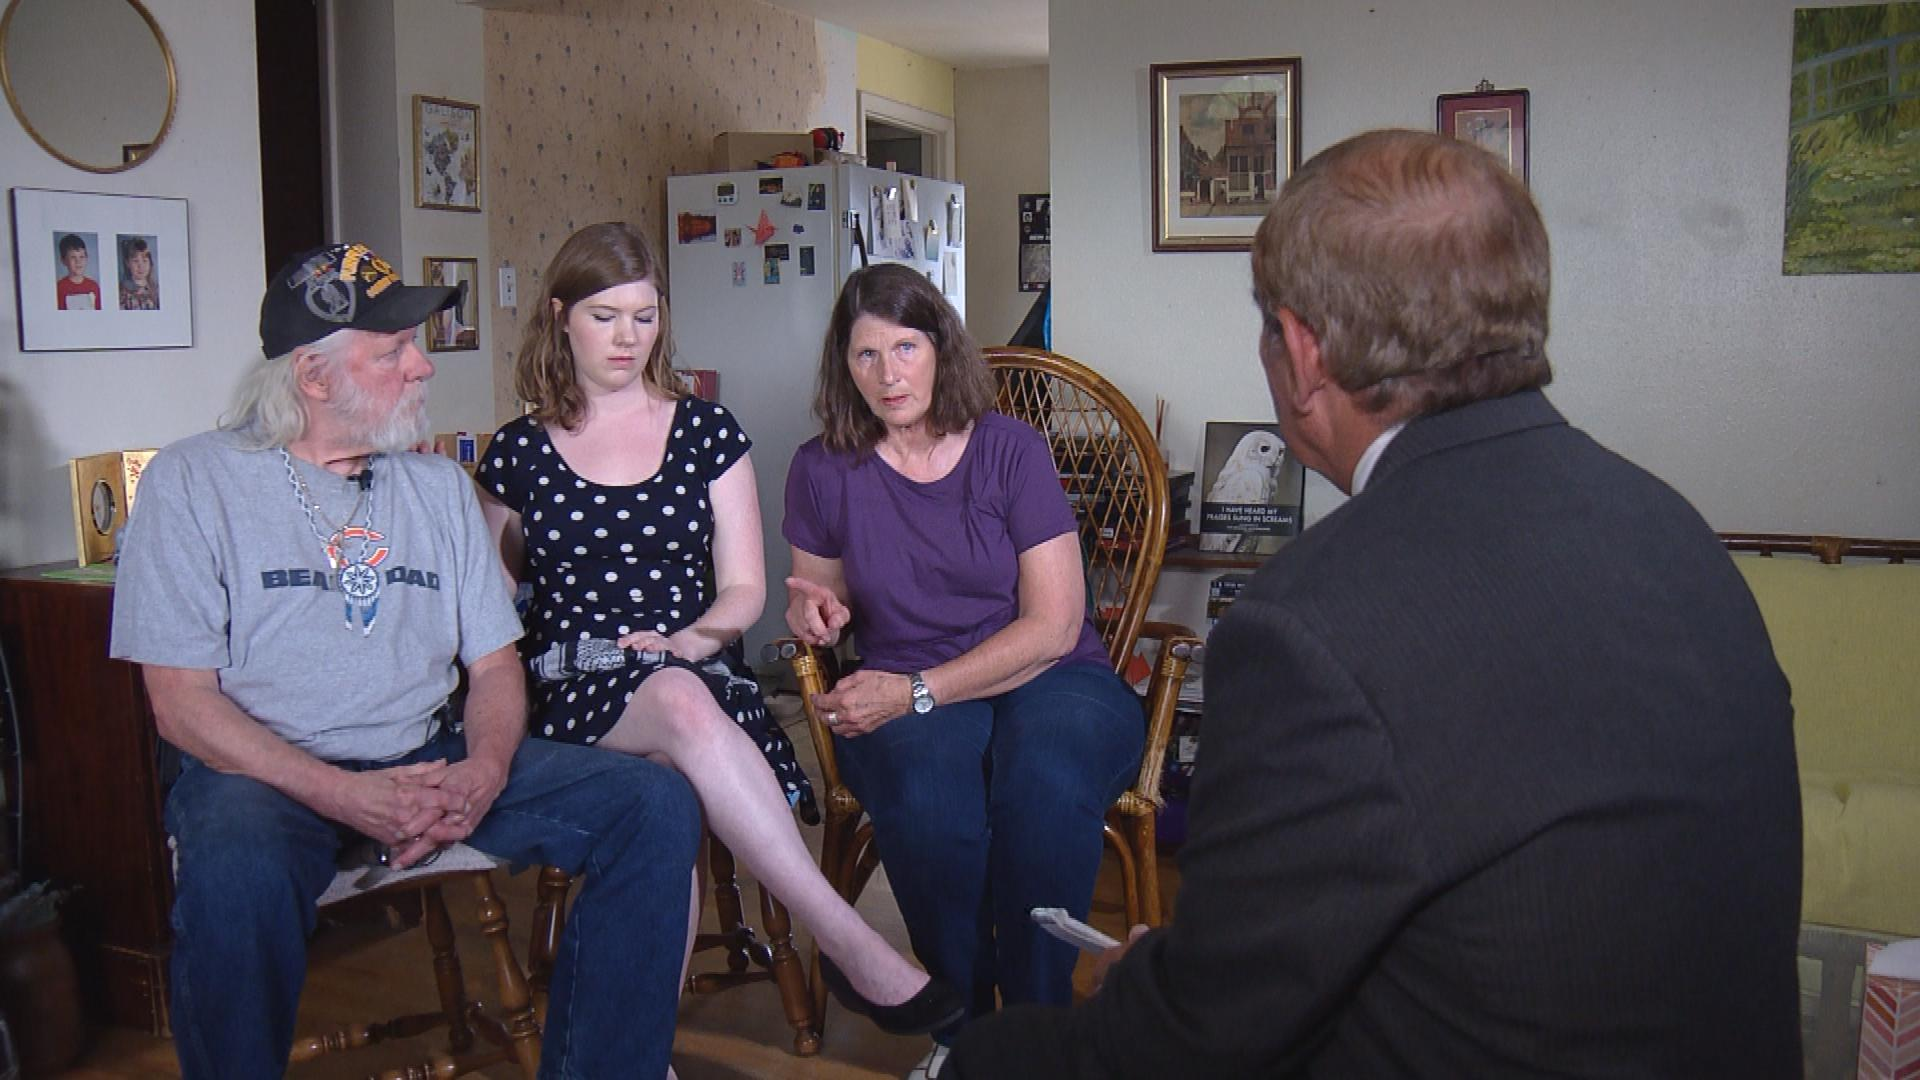 CBS4's Rick Sallinger interviews members of Jack Shirley's family. (credit: CBS)